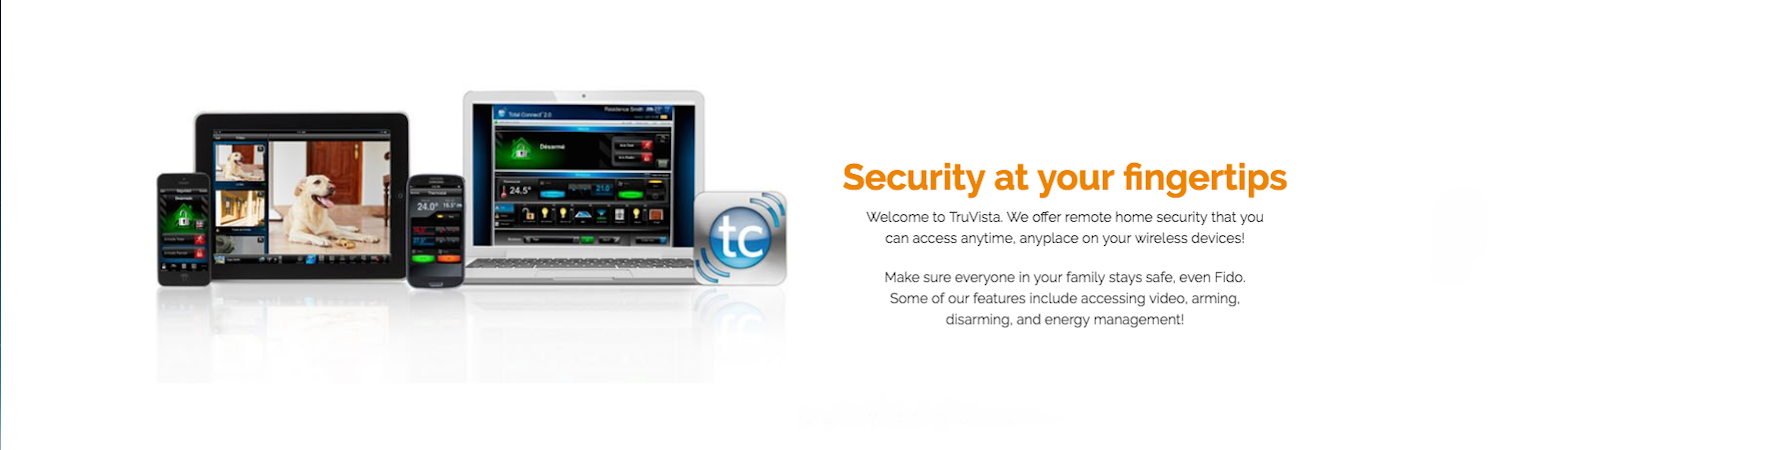 Security at your fingertips